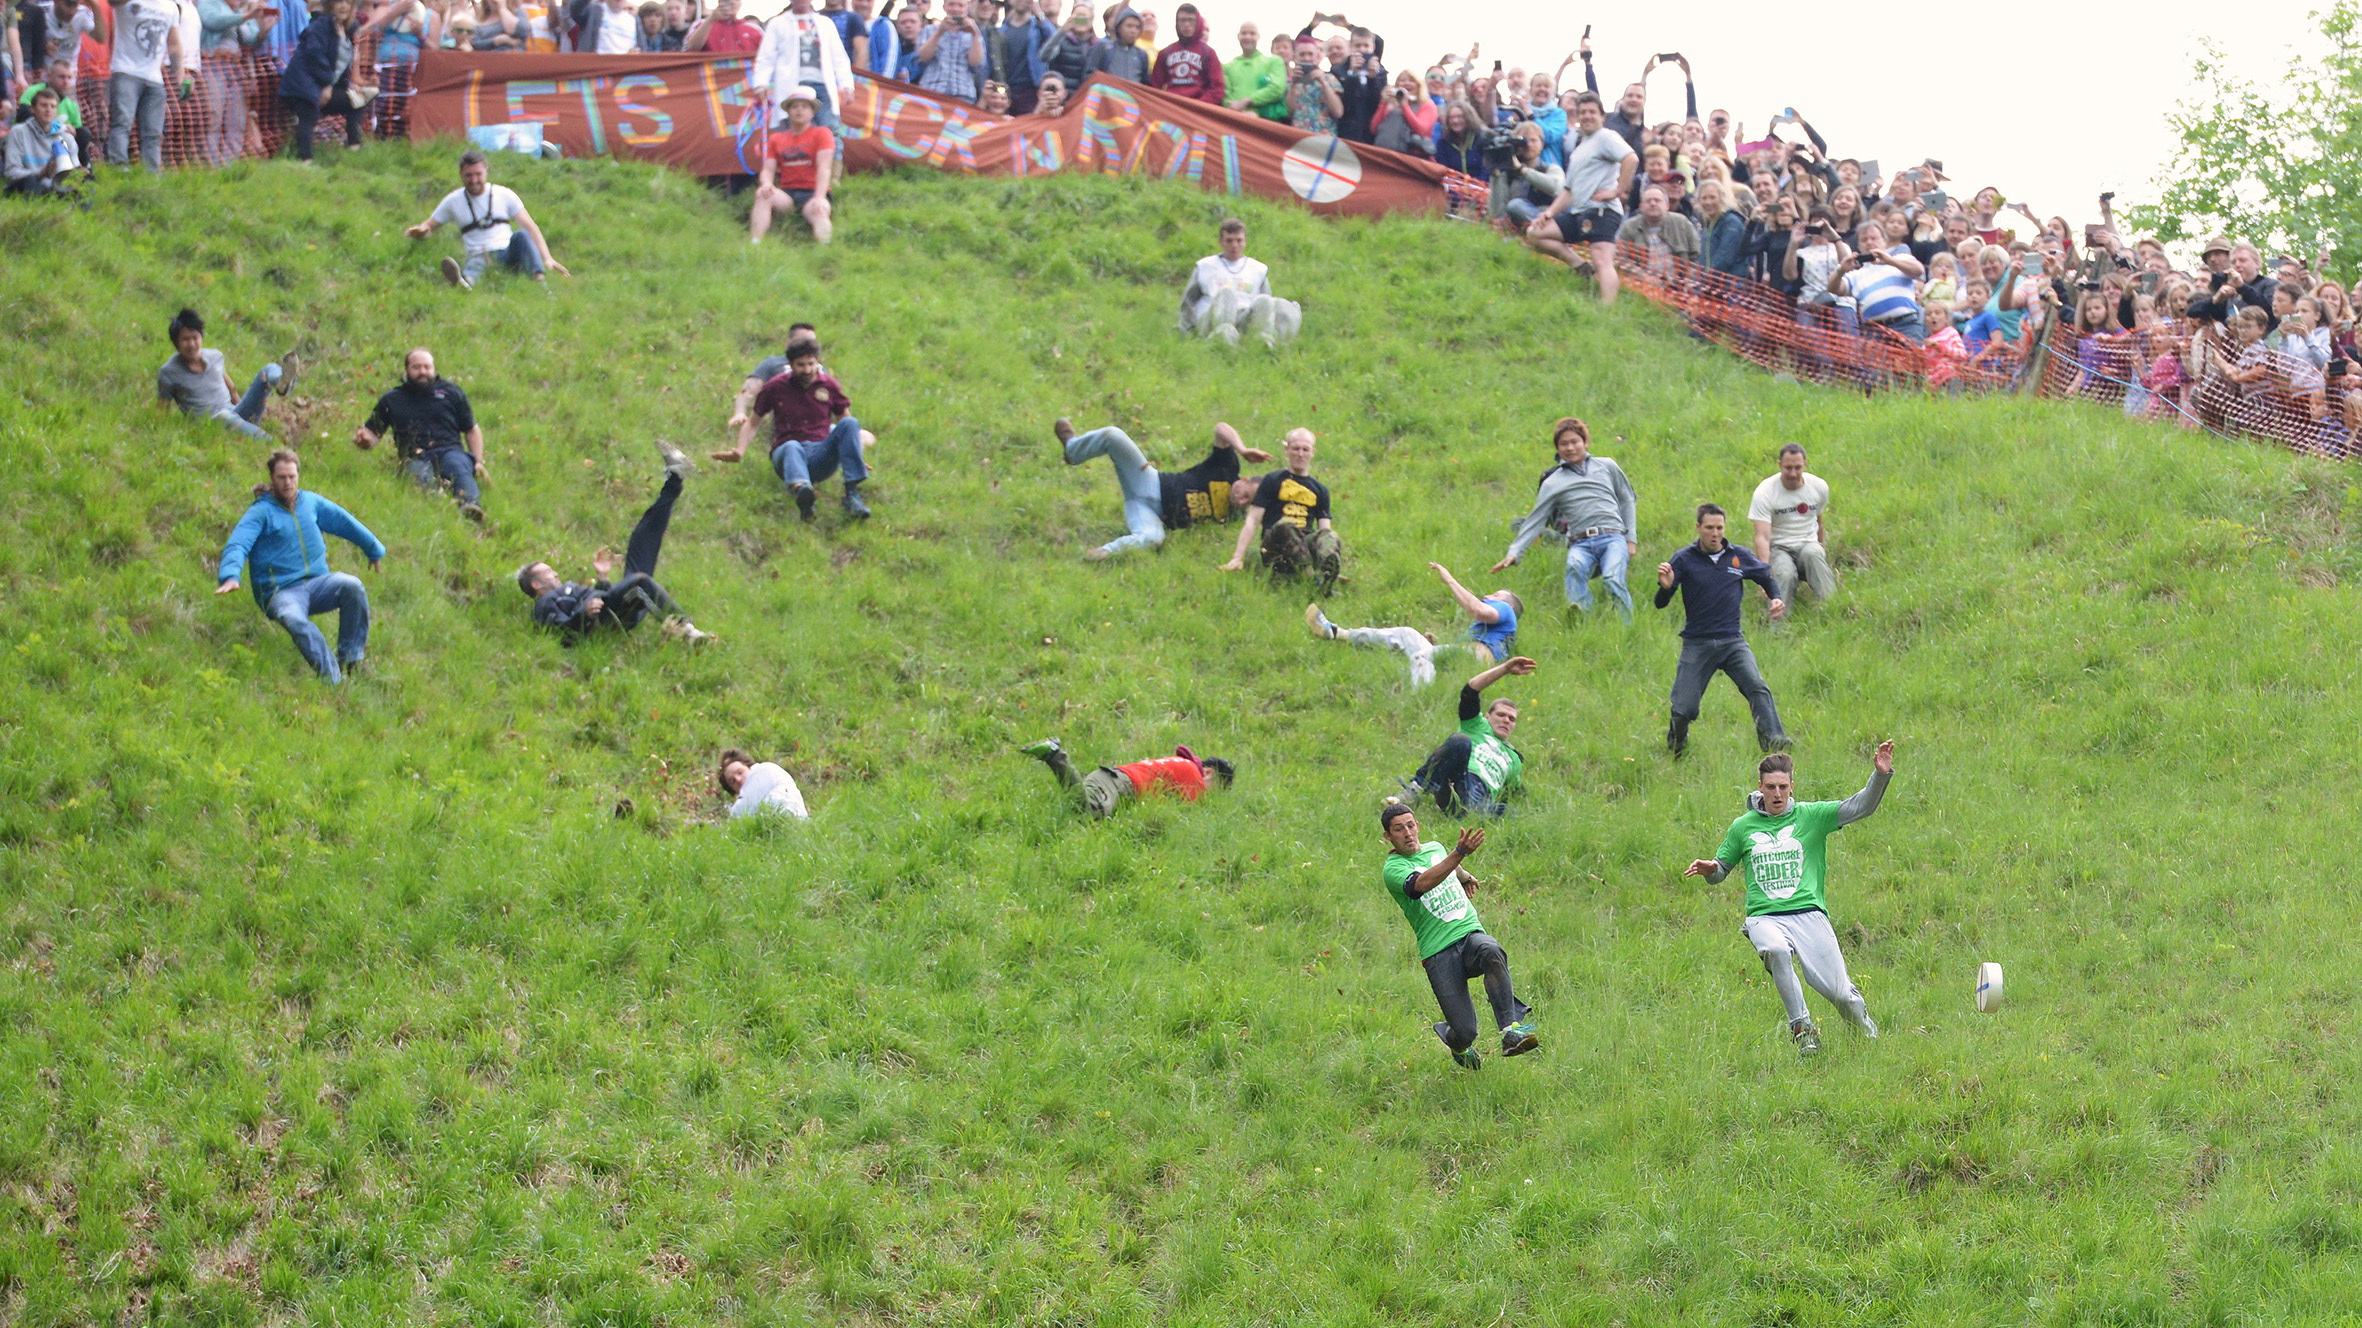 The Cheese Rolling Festival